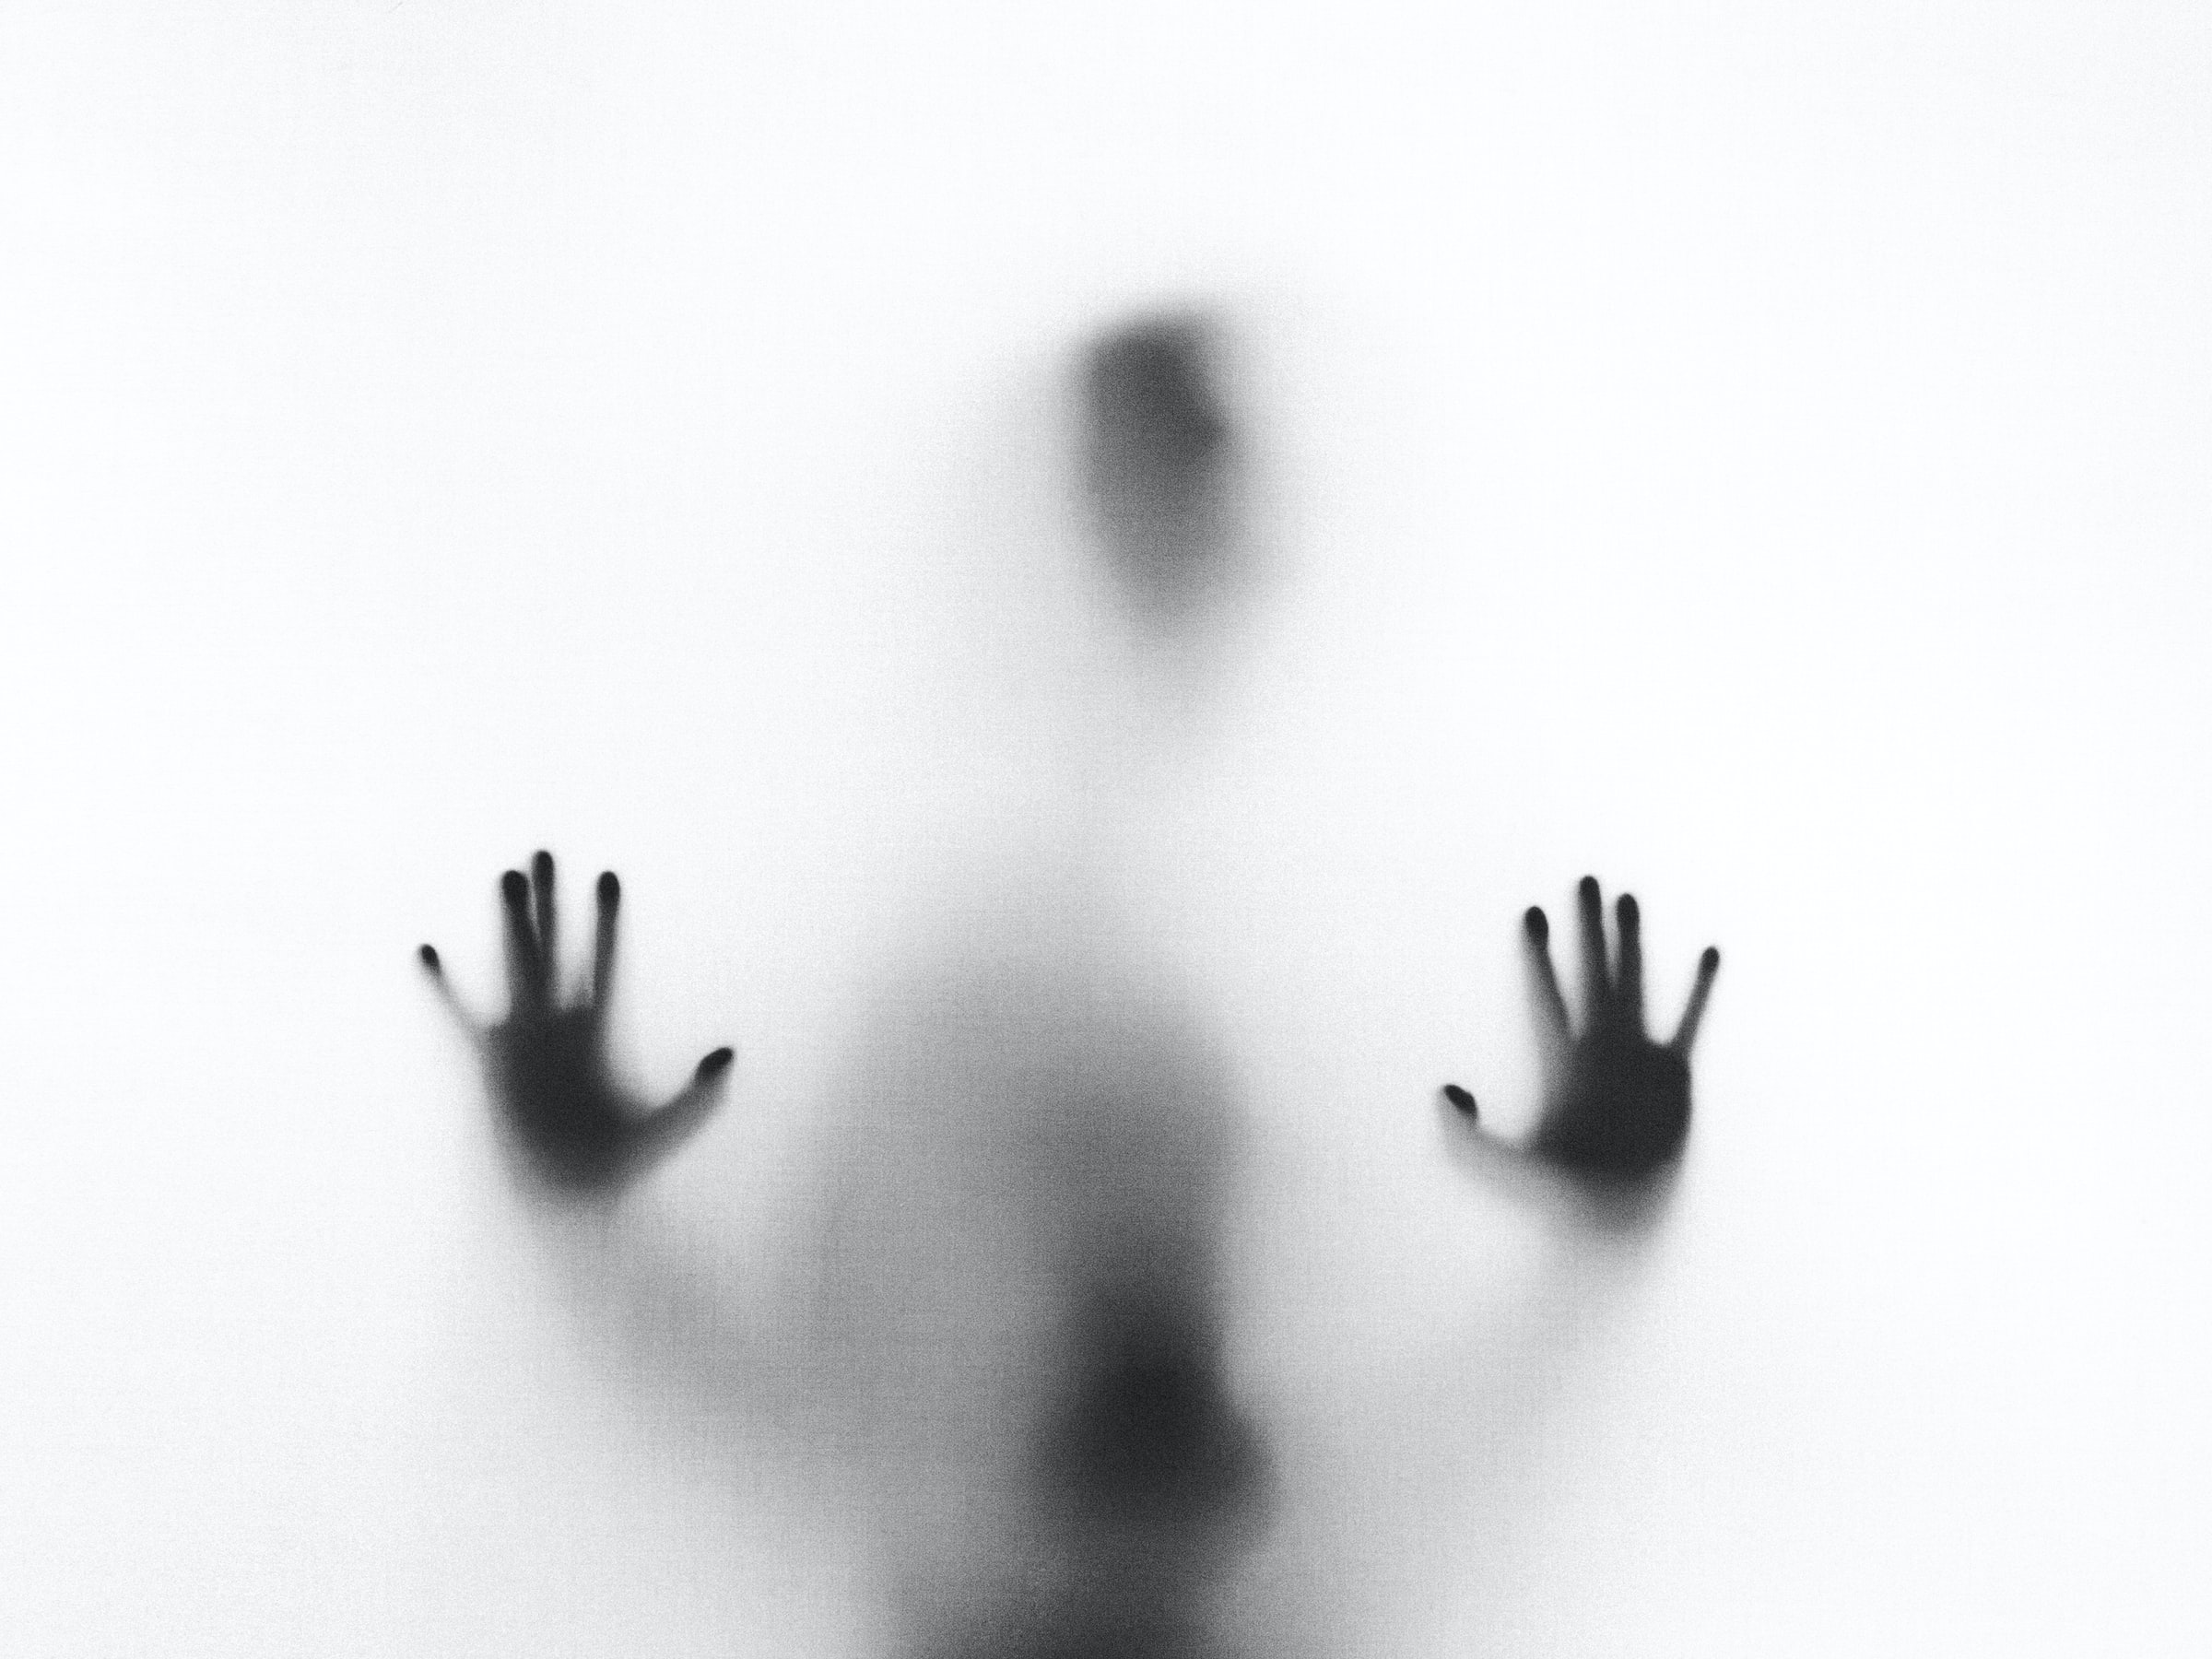 18 People Reveal Their Creepiest Real Experiences